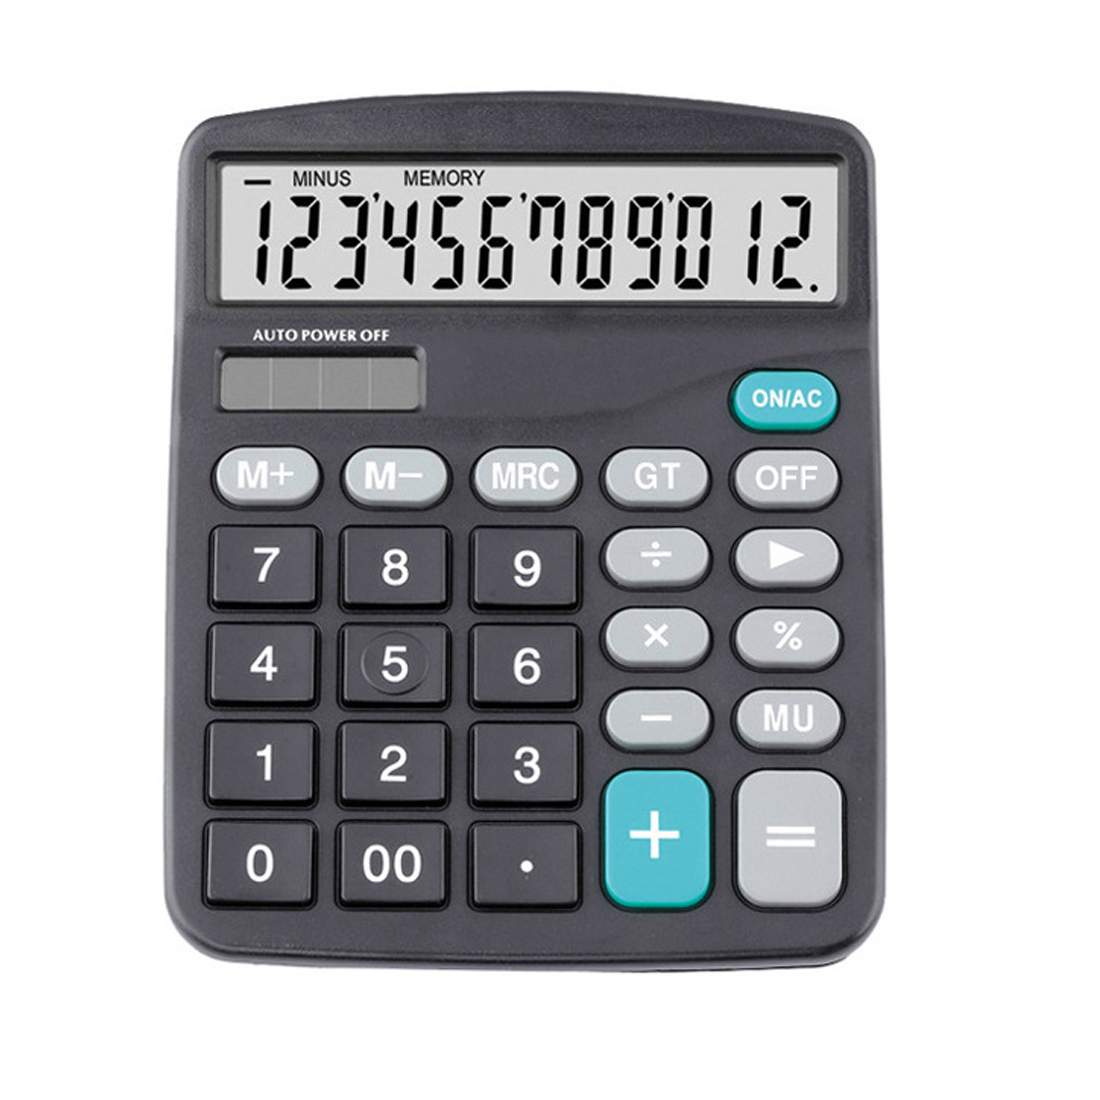 NOYOKERE Solar Calculator Calculate Commercial Tool Battery or Solar 2in1 Powered 12 Digit Electronic Calculator and Button deli brand solar calculator office finance accounting large computer screen 12 digit white 40d1596